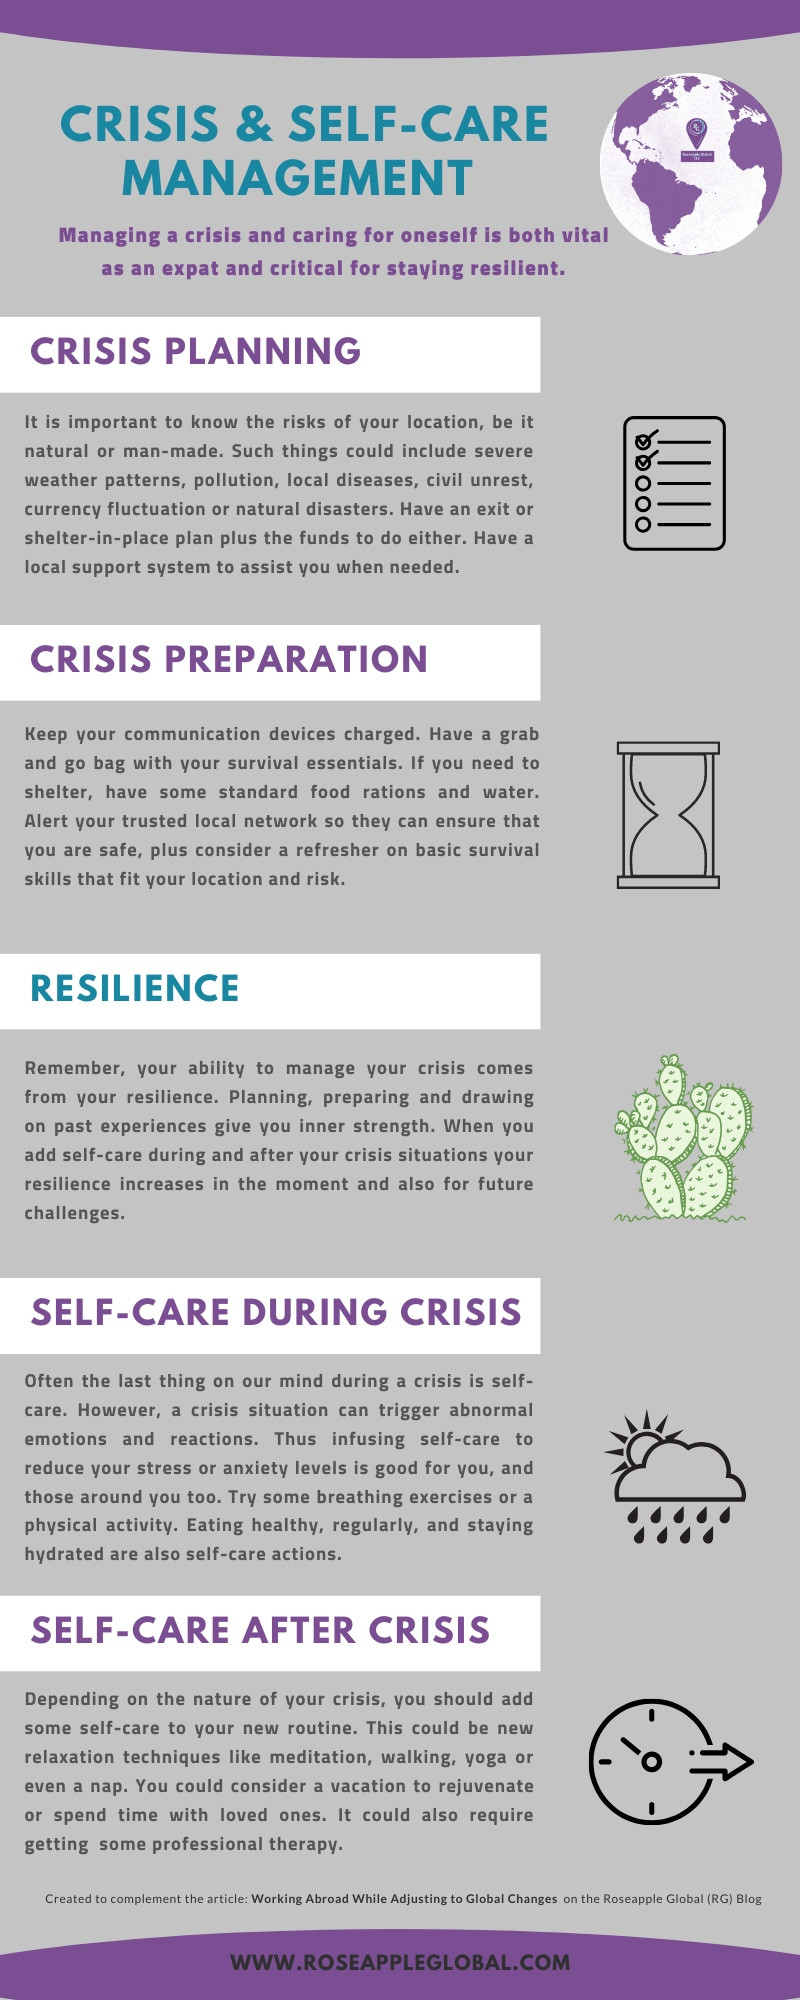 Infographic about crisis planning and self-care